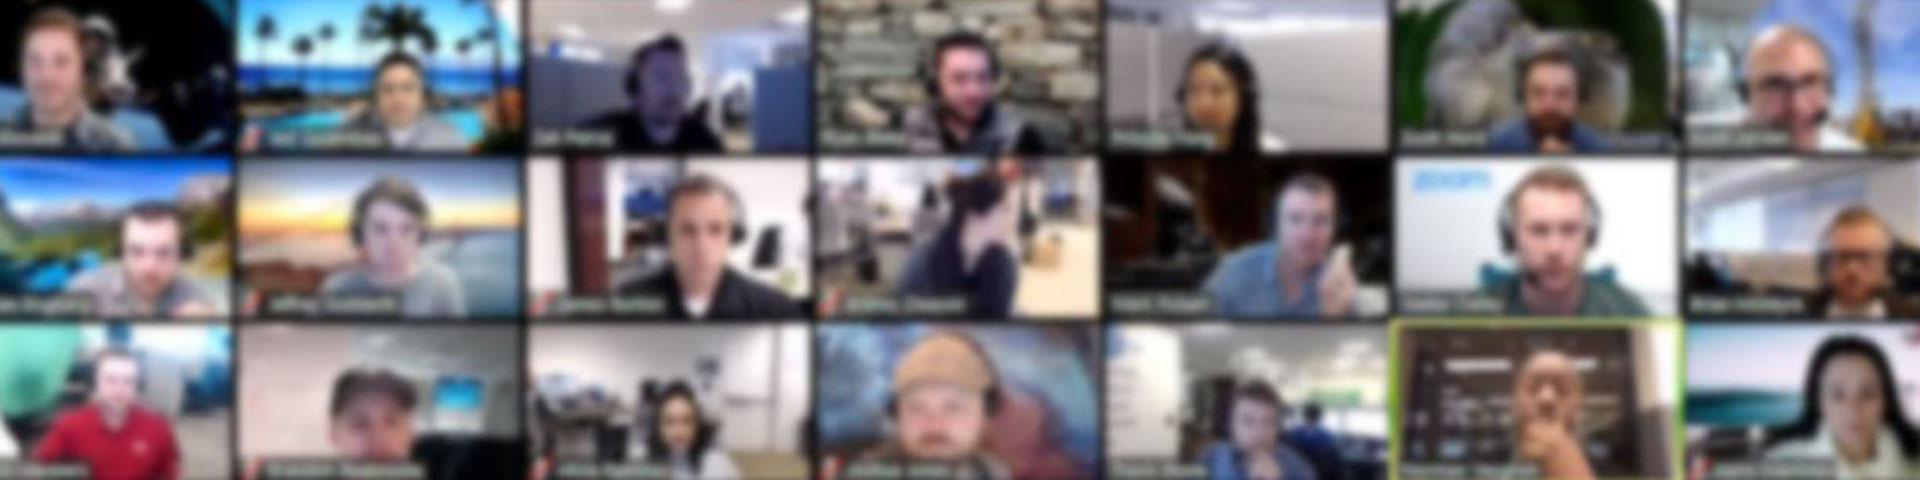 Sample screenshot of participants in a Zoom meeting